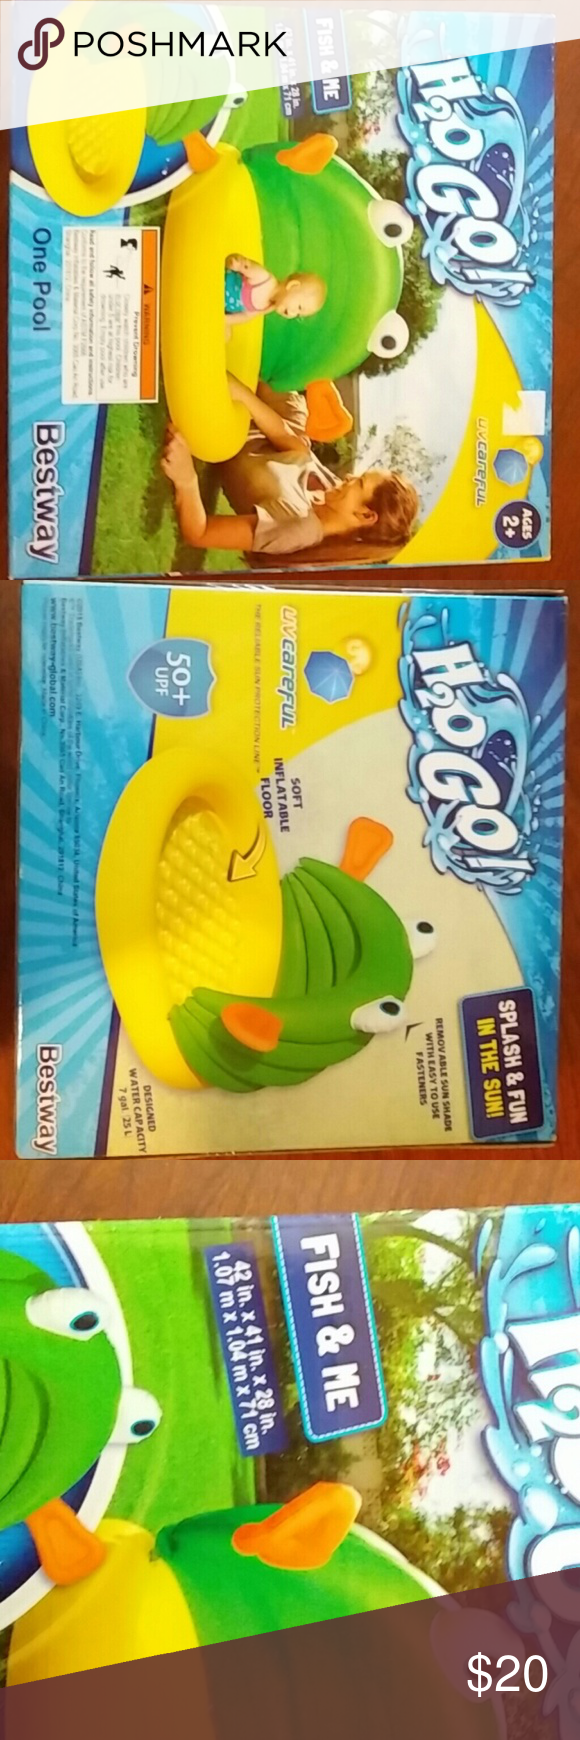 Baby fish pool H2O Go! Fish and Me baby pool. Ages 2+. Pool is 42 in. ? 41 in. ? 28 in. Designed water capacity is 7 gal. (25 L). This is completely brand new. The box has never even been opened, everything is still sealed, and is exactly as I purchased. Feel free to ask any questions and don't be afraid of that offer button! BestWay Swim